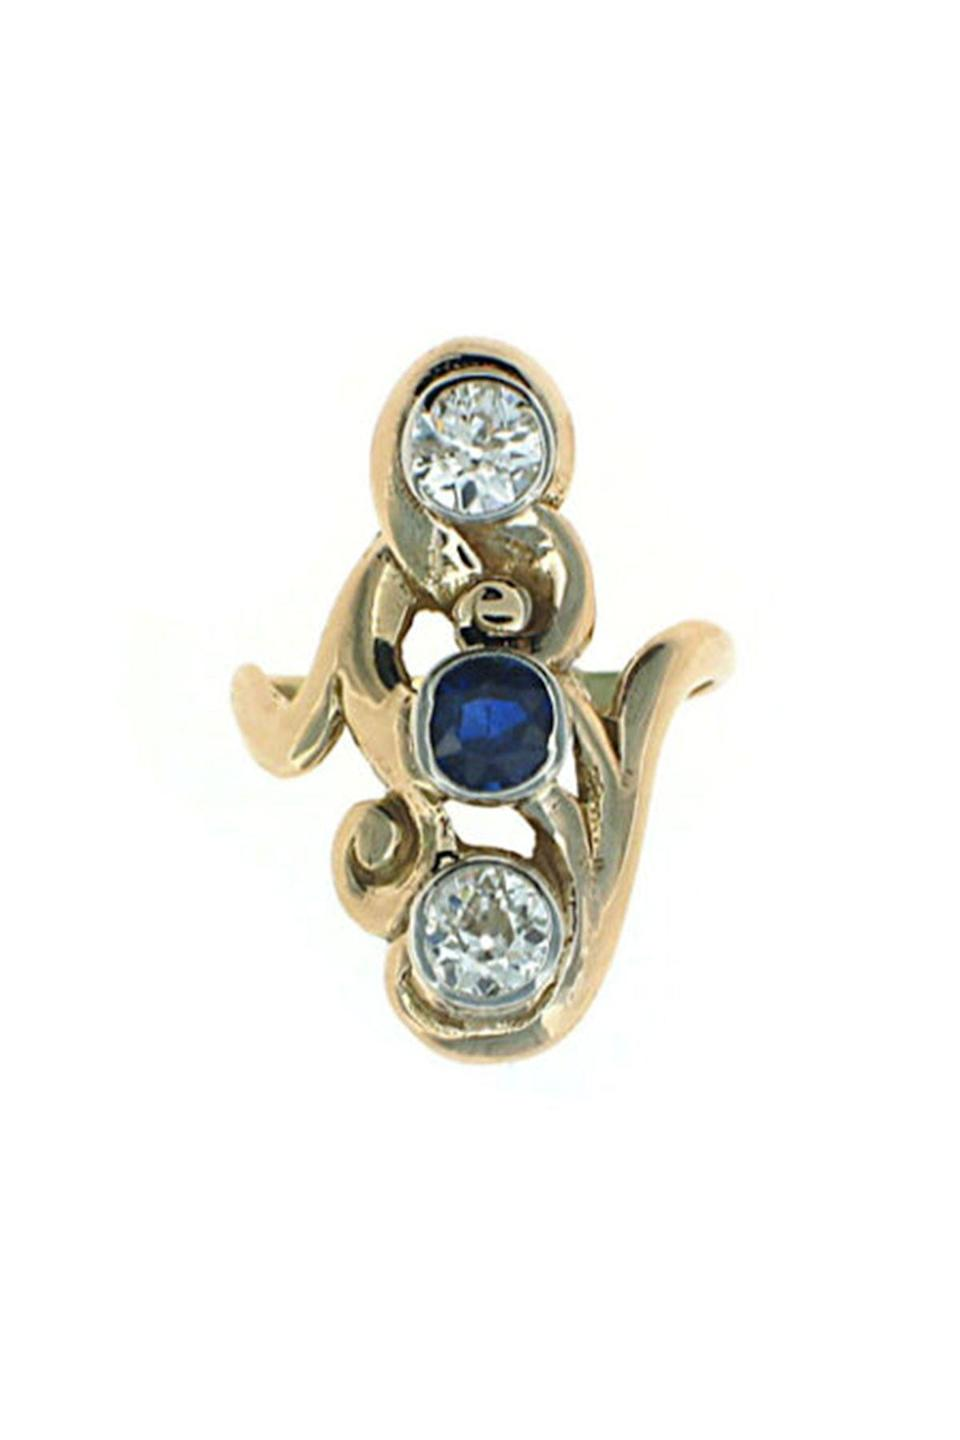 """<p><strong>Beladora</strong></p><p>beladora.com</p><p><strong>$2450.00</strong></p><p><a href=""""https://www.beladora.com/jewelry/500616-antique-art-nouveau-sapphire-and-diamond-ring-in-14k/"""" rel=""""nofollow noopener"""" target=""""_blank"""" data-ylk=""""slk:Shop Now"""" class=""""link rapid-noclick-resp"""">Shop Now</a></p><p>Two bezel-set old mine cut diamonds and a center blue sapphire are set in an elongated and swirling design characteristic of the period. </p>"""